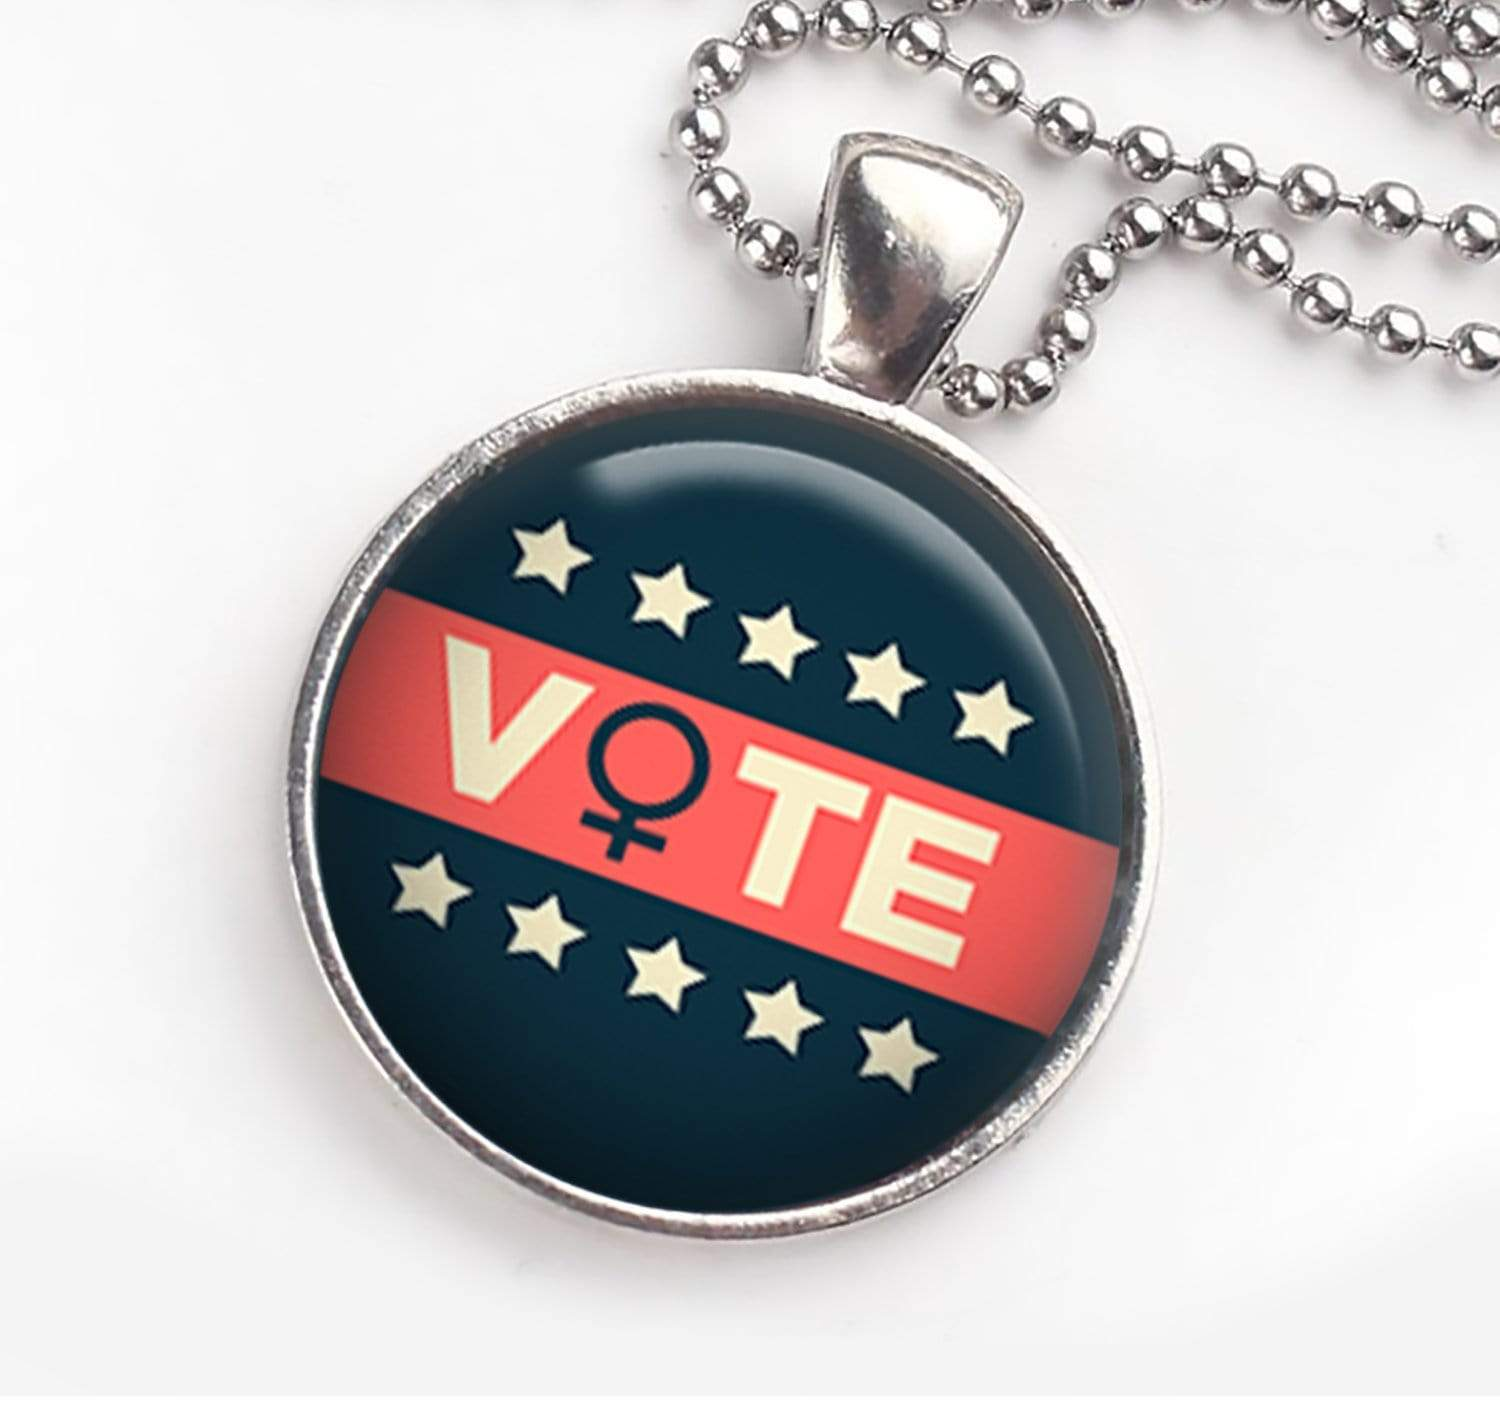 Vote Necklace With Women's Symbol Necklace Buttons For the People